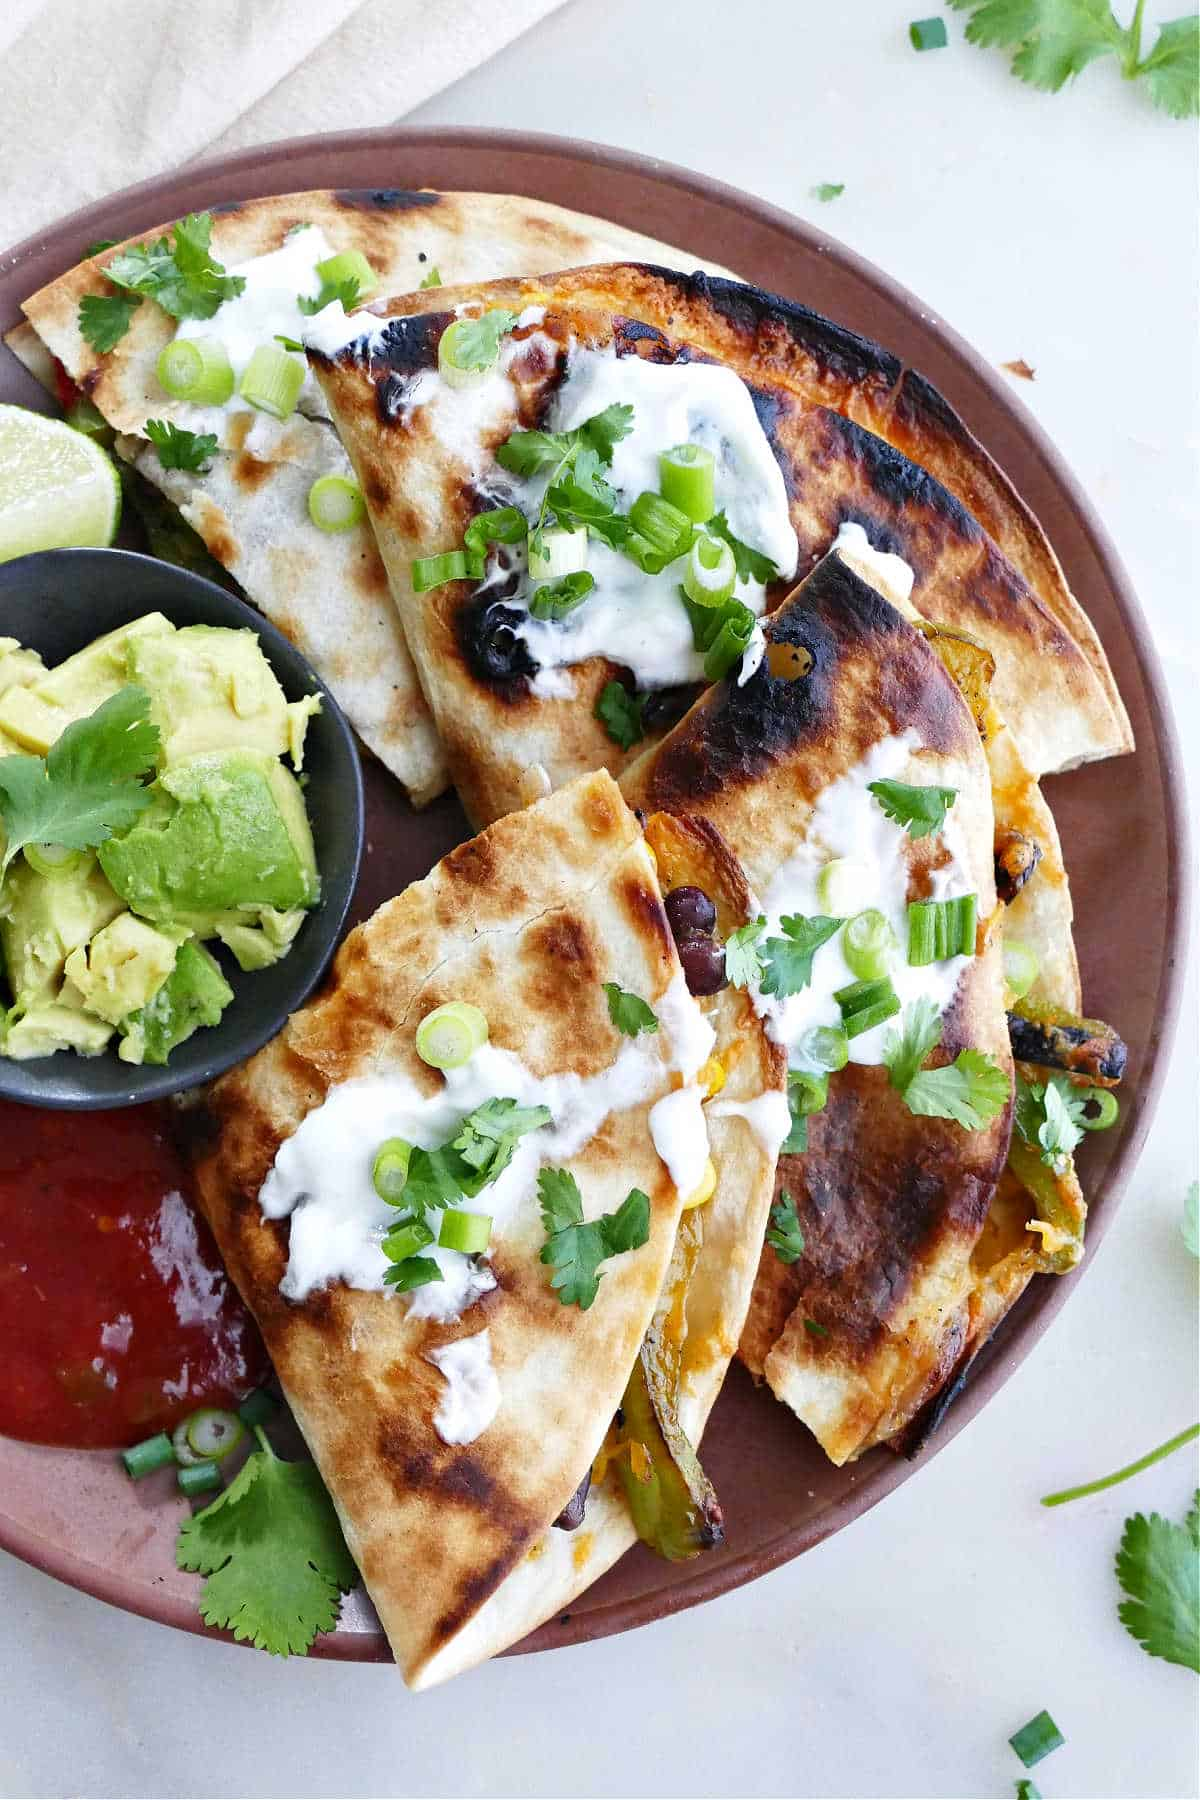 grilled quesadilla sliced into pieces on a serving plate topped with cilantro